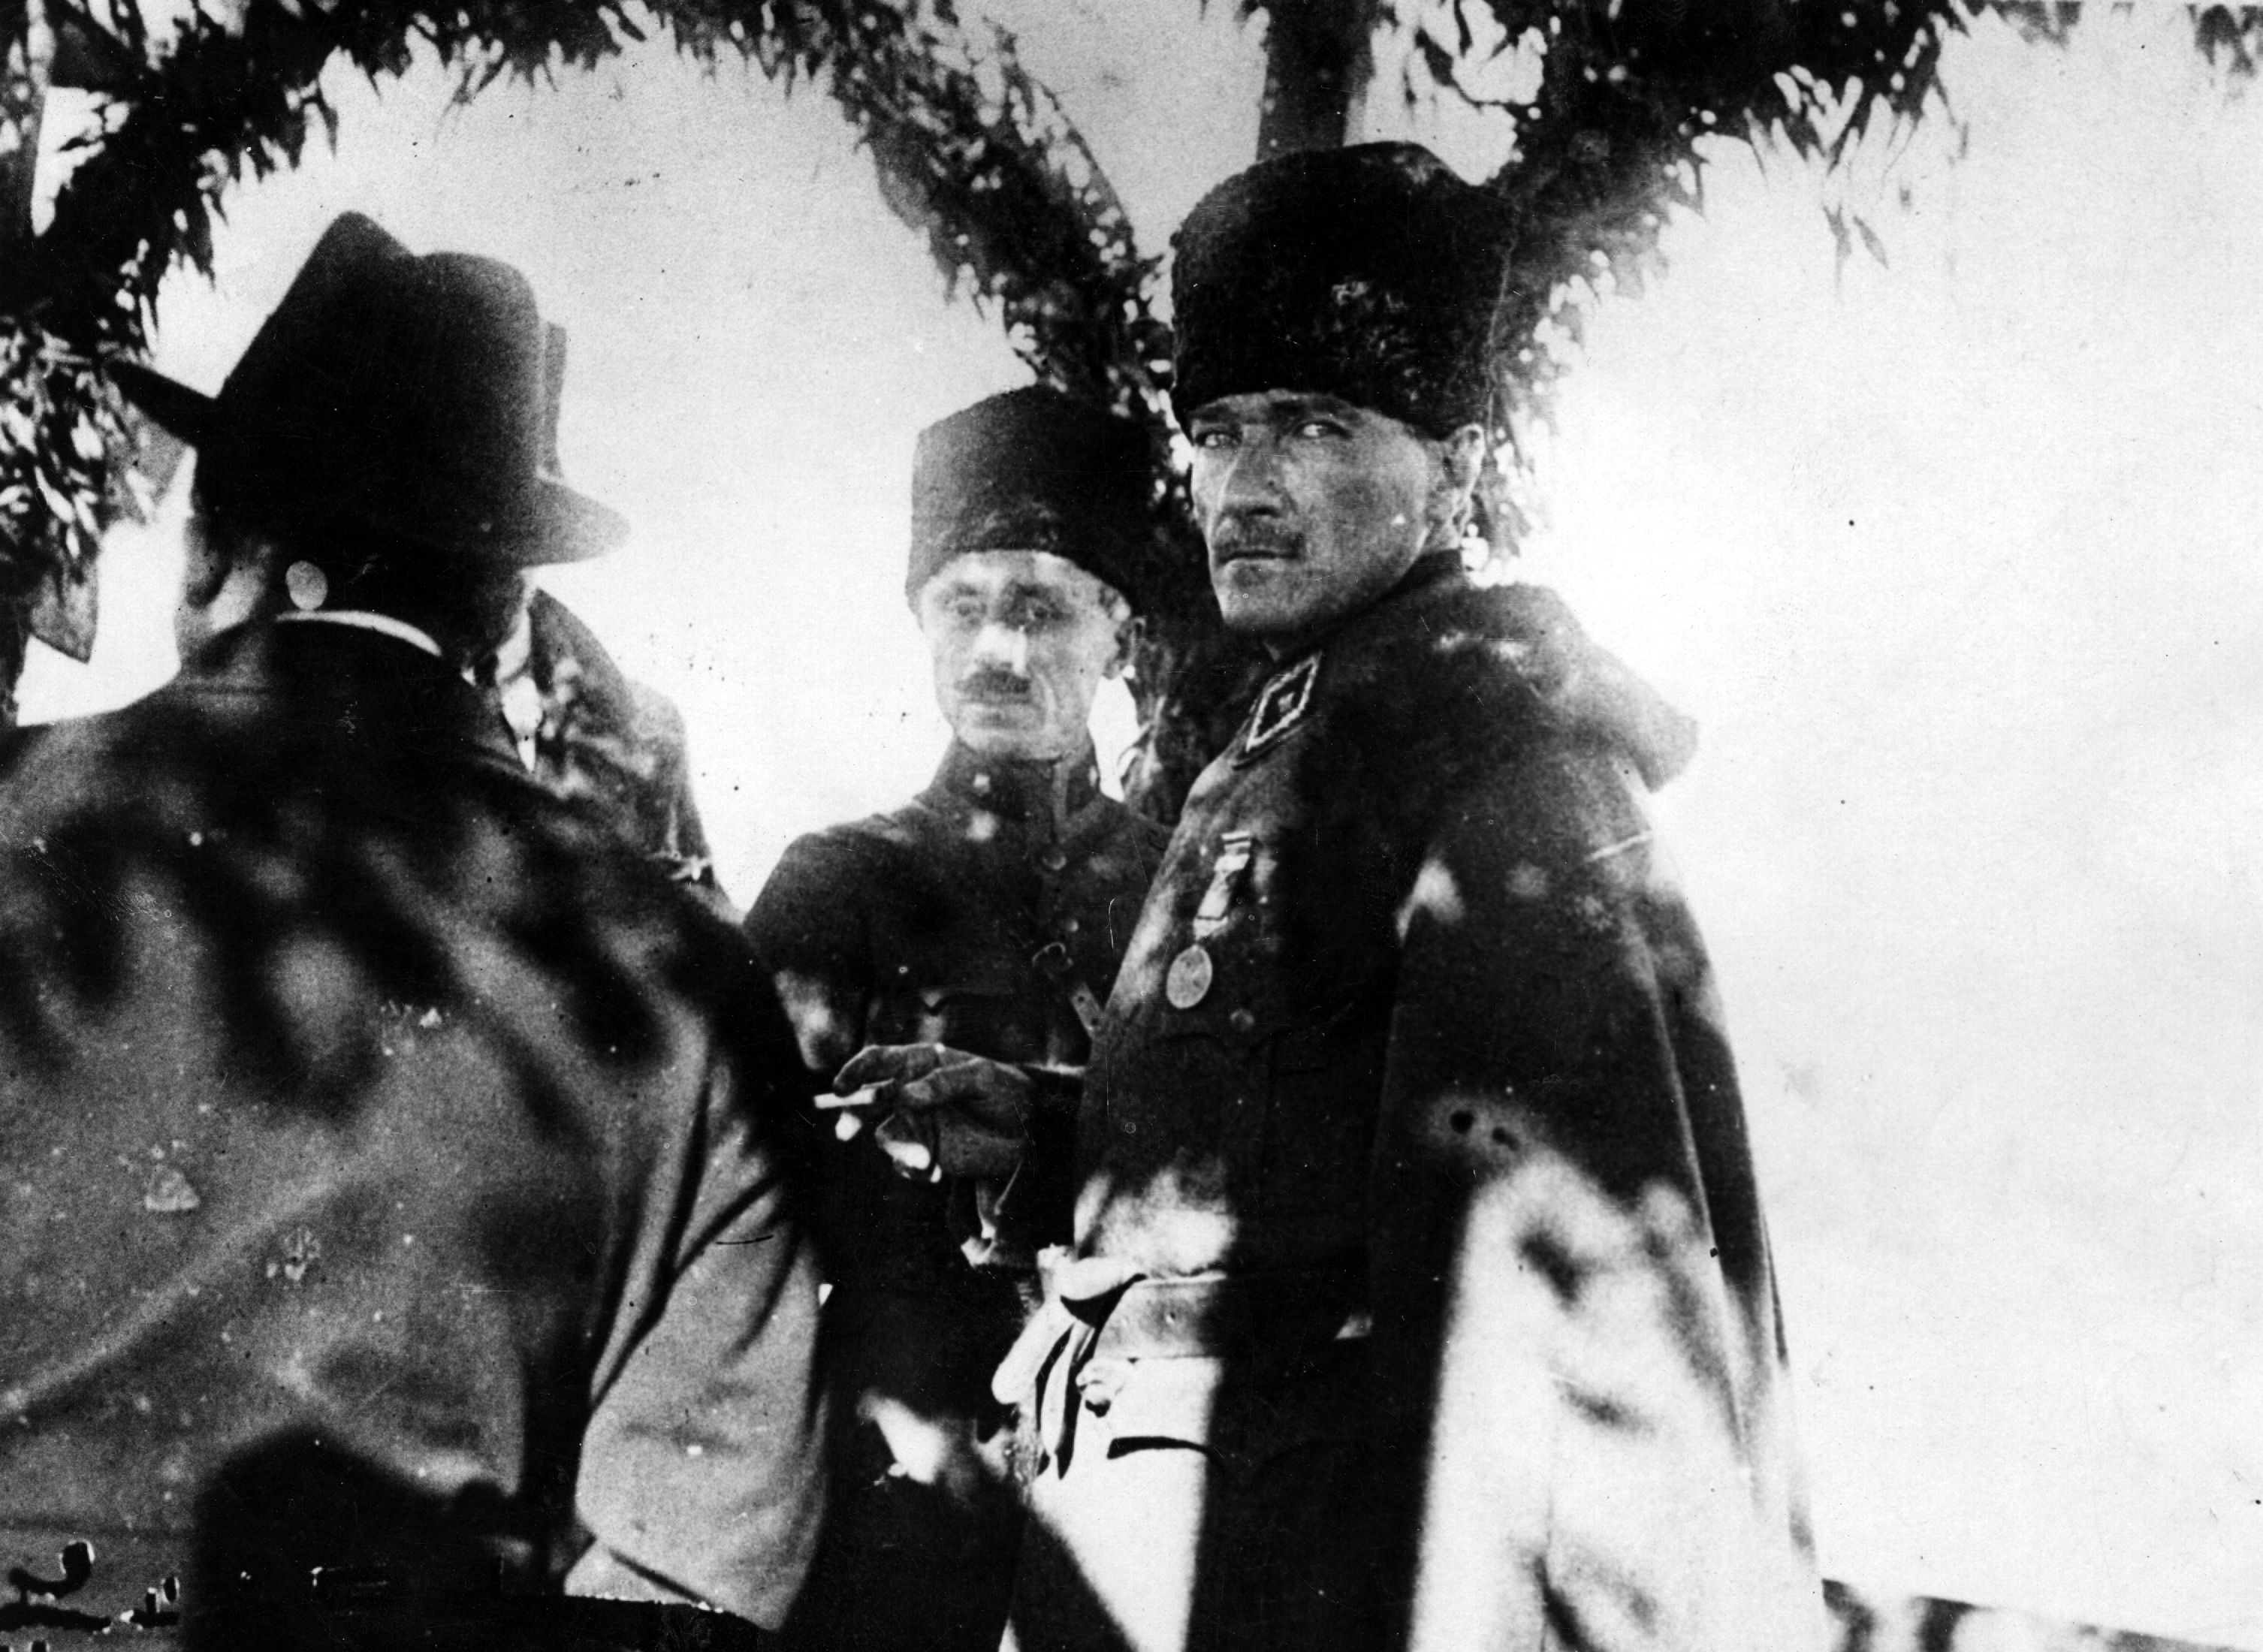 """Mustafa Kemal Atatürk. He """"had absolutely enormous charisma, which grew the older he got,"""" says Norman Stone. (Hulton Archive/Getty Images)"""